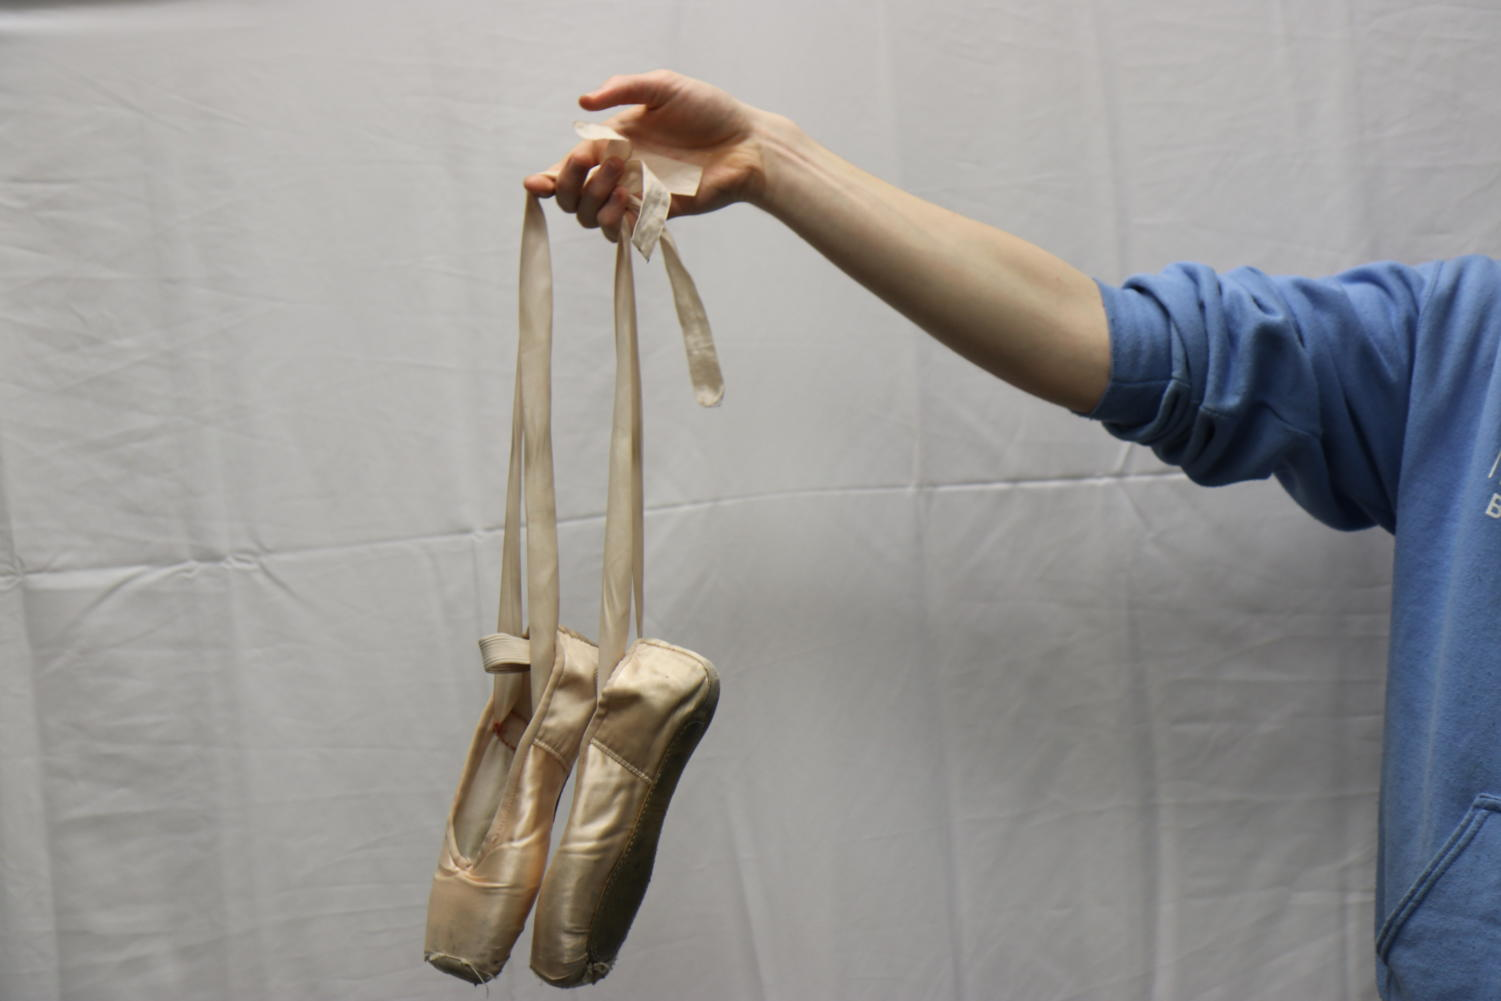 Siberian Swan, pointe shoe company challenges the norm with pointe shoes created for men.